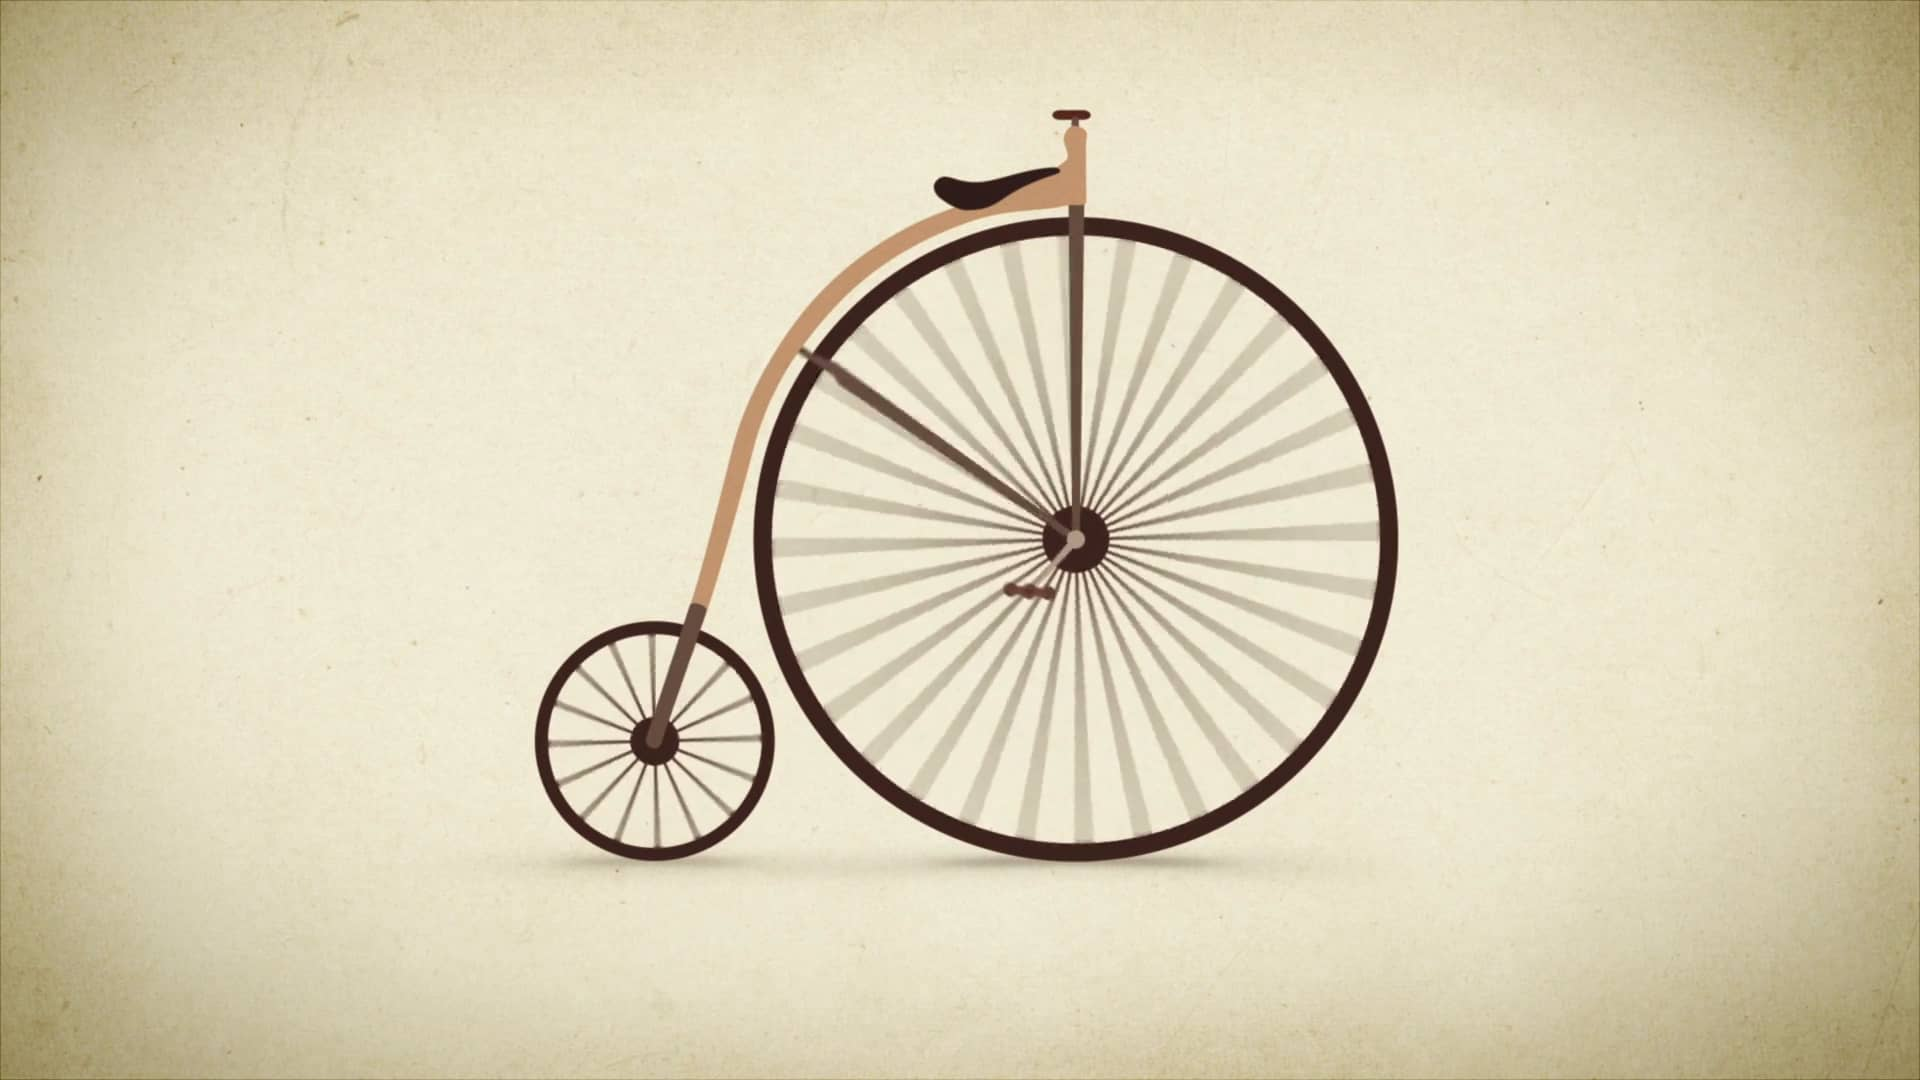 Evolution of the Bicycle on Vimeo.